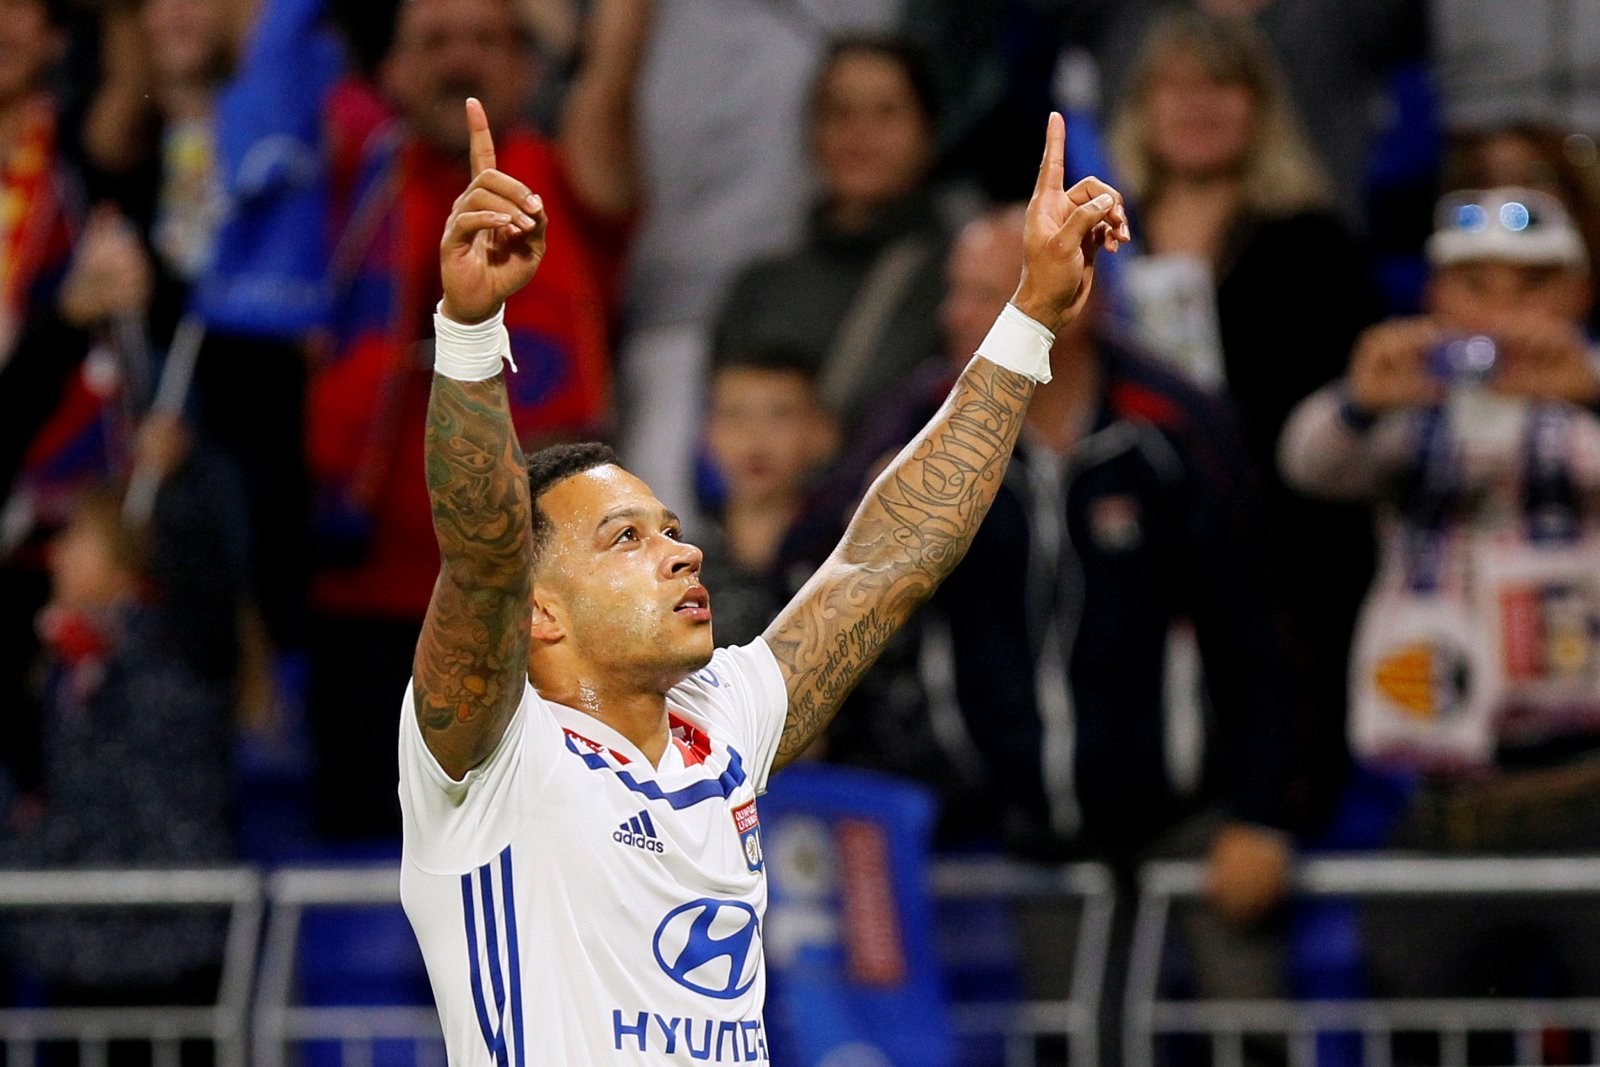 Chelsea could give Memphis Depay another chance in England